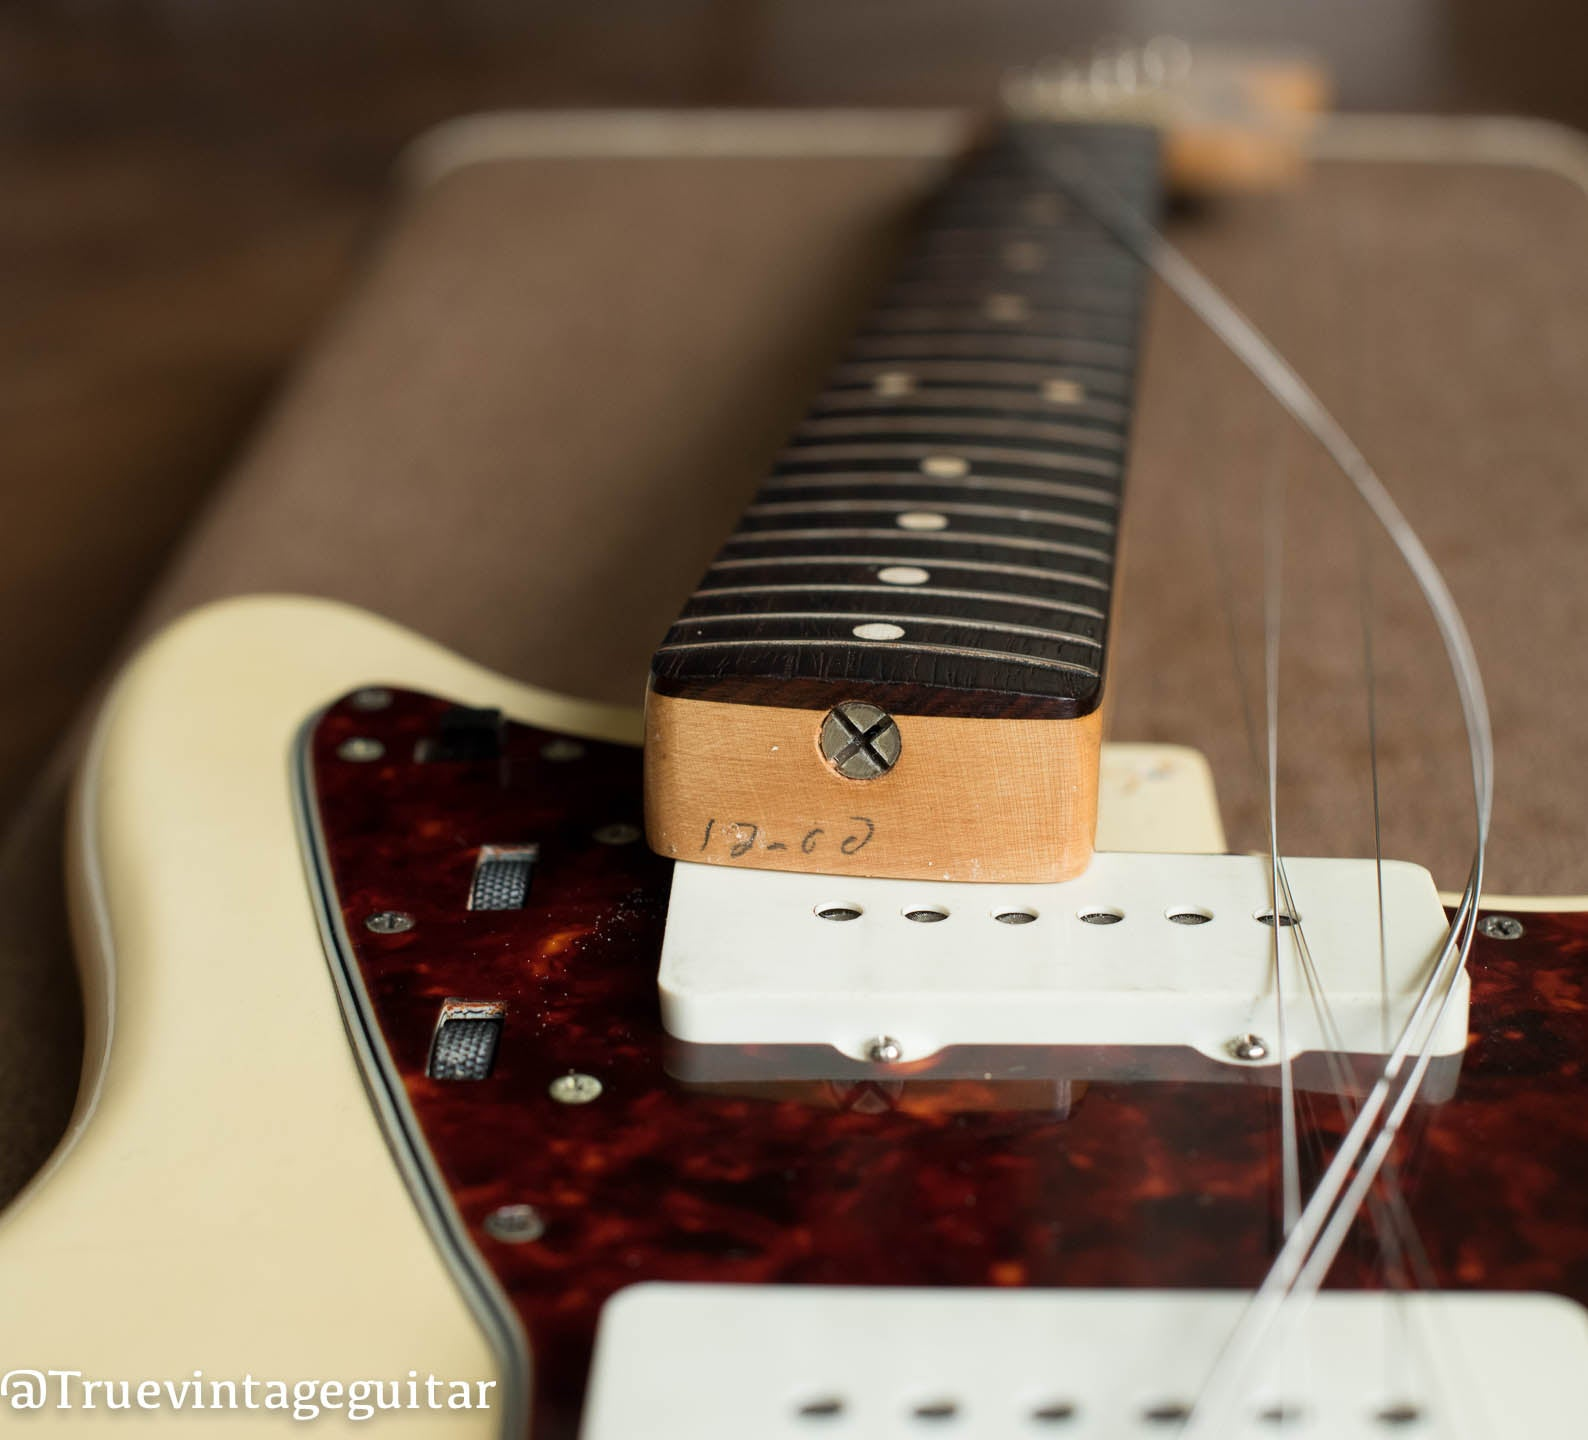 1961 Fender Jazzmaster Guitar, Blond finish over Ash body, neck pencil date 12/60